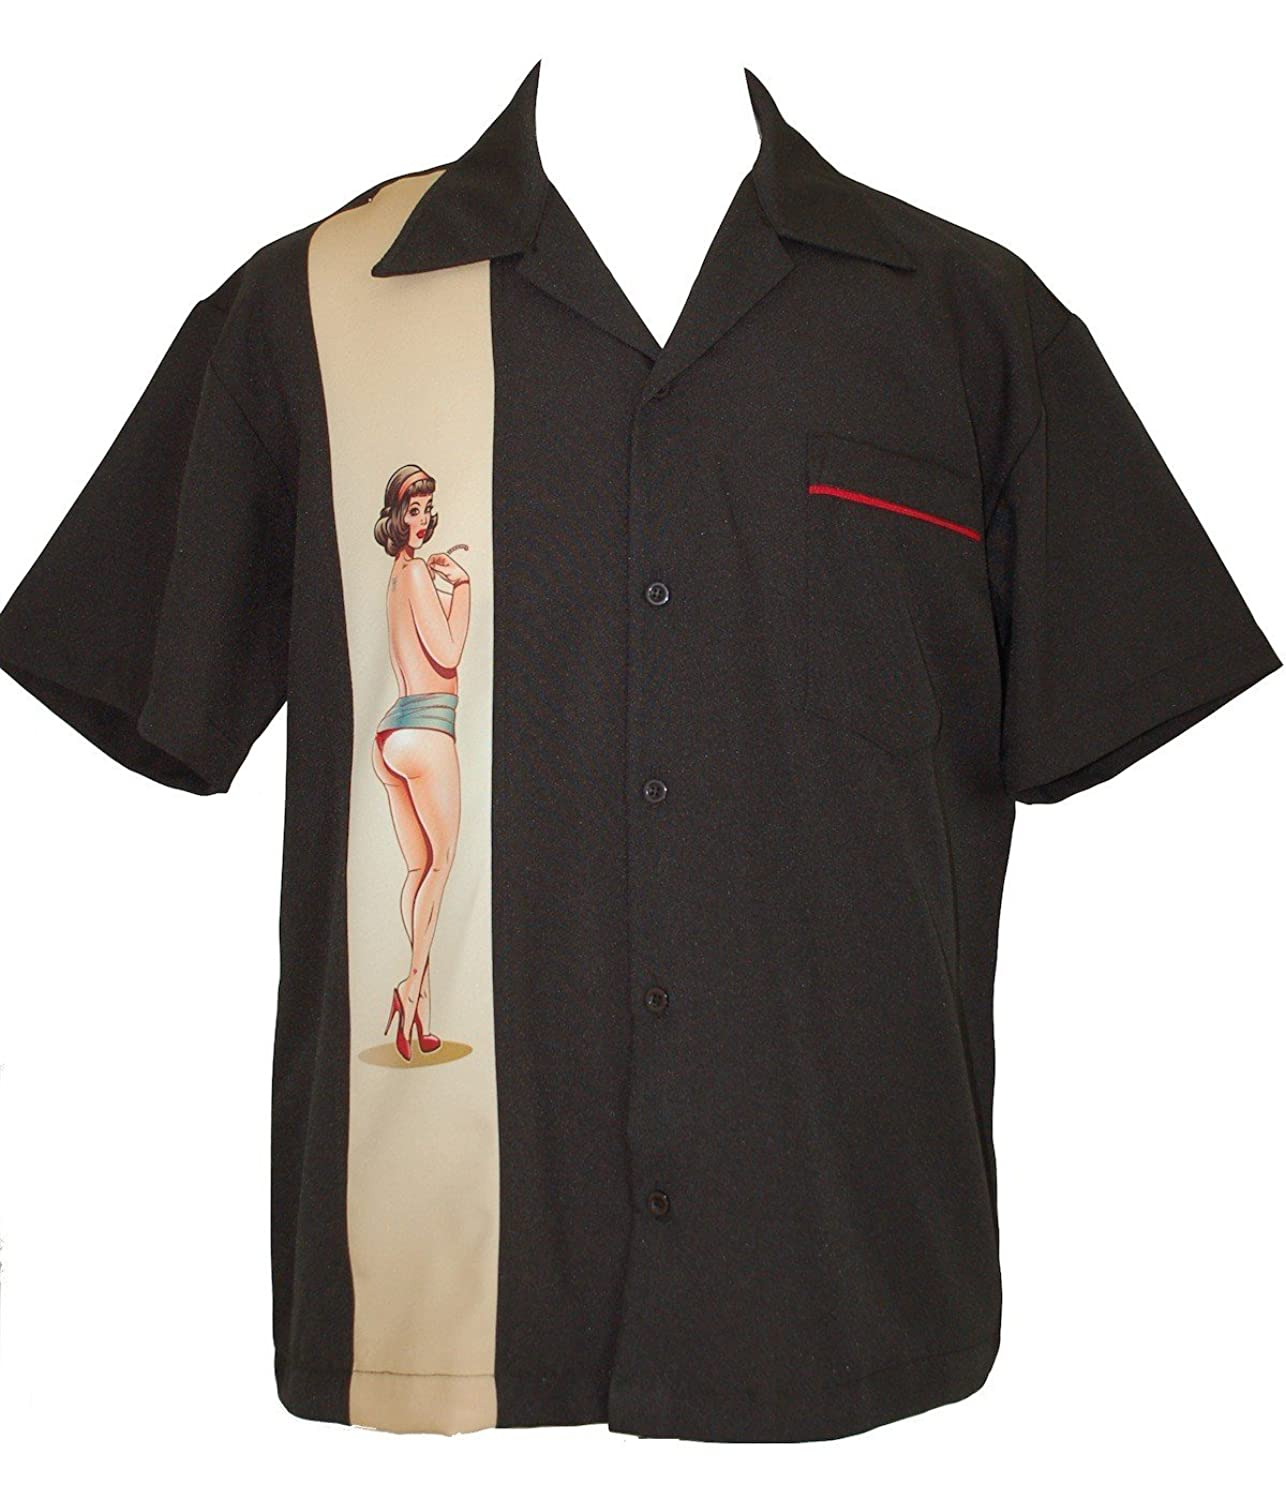 1950s Men's Clothing PinUp Girl Mens Bowling Lounge Retro Shirt ~ BeRetro Classy PinUp Girl $65.95 AT vintagedancer.com